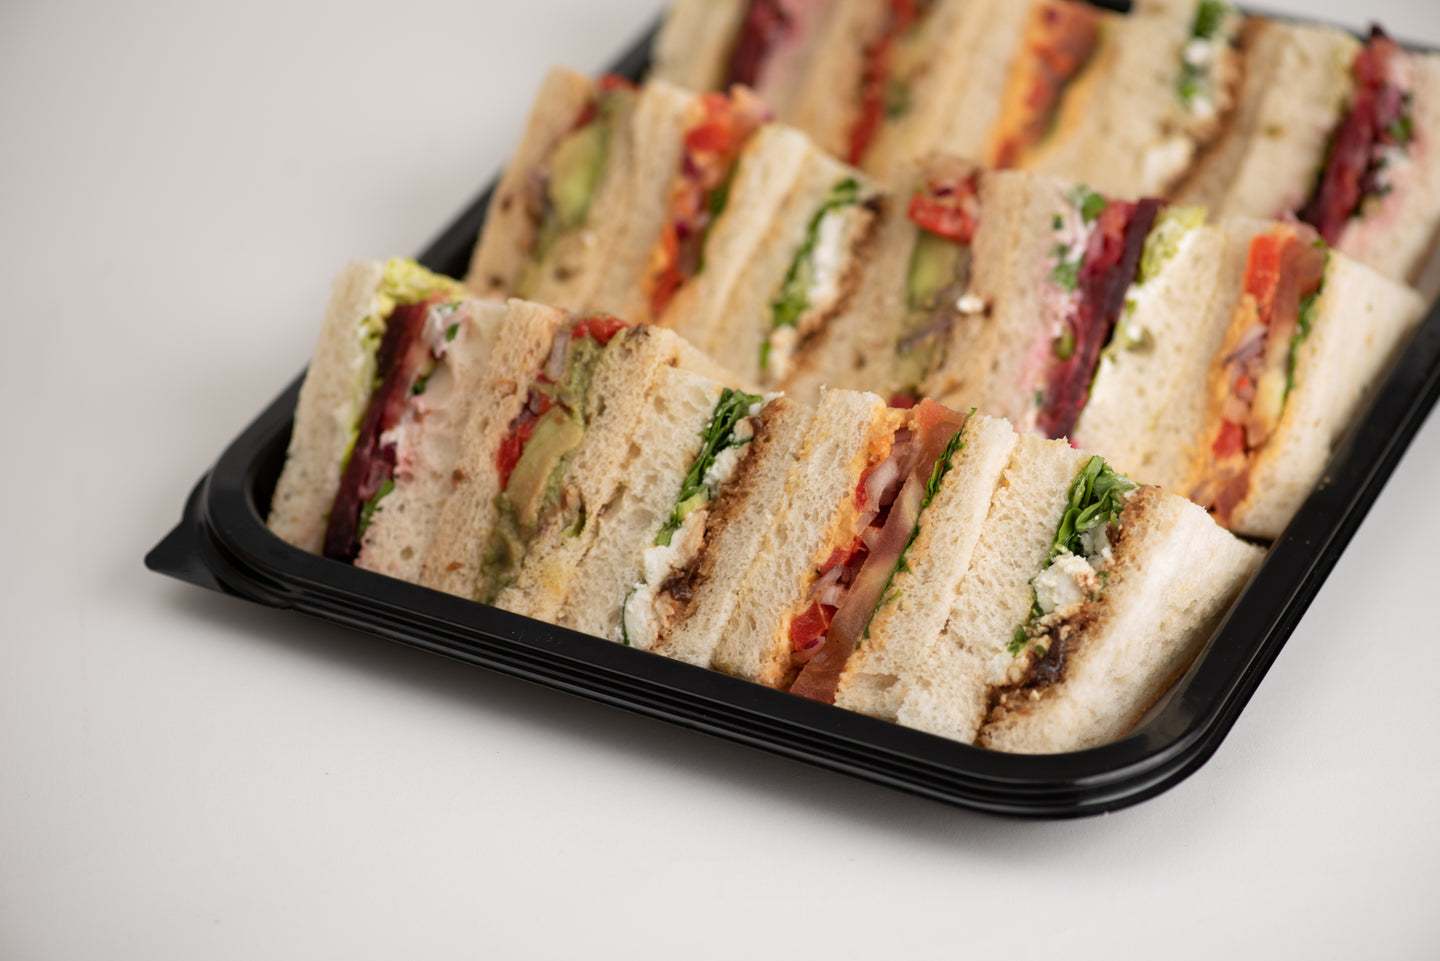 Vegetarian Sandwich Platter (for 4 people)